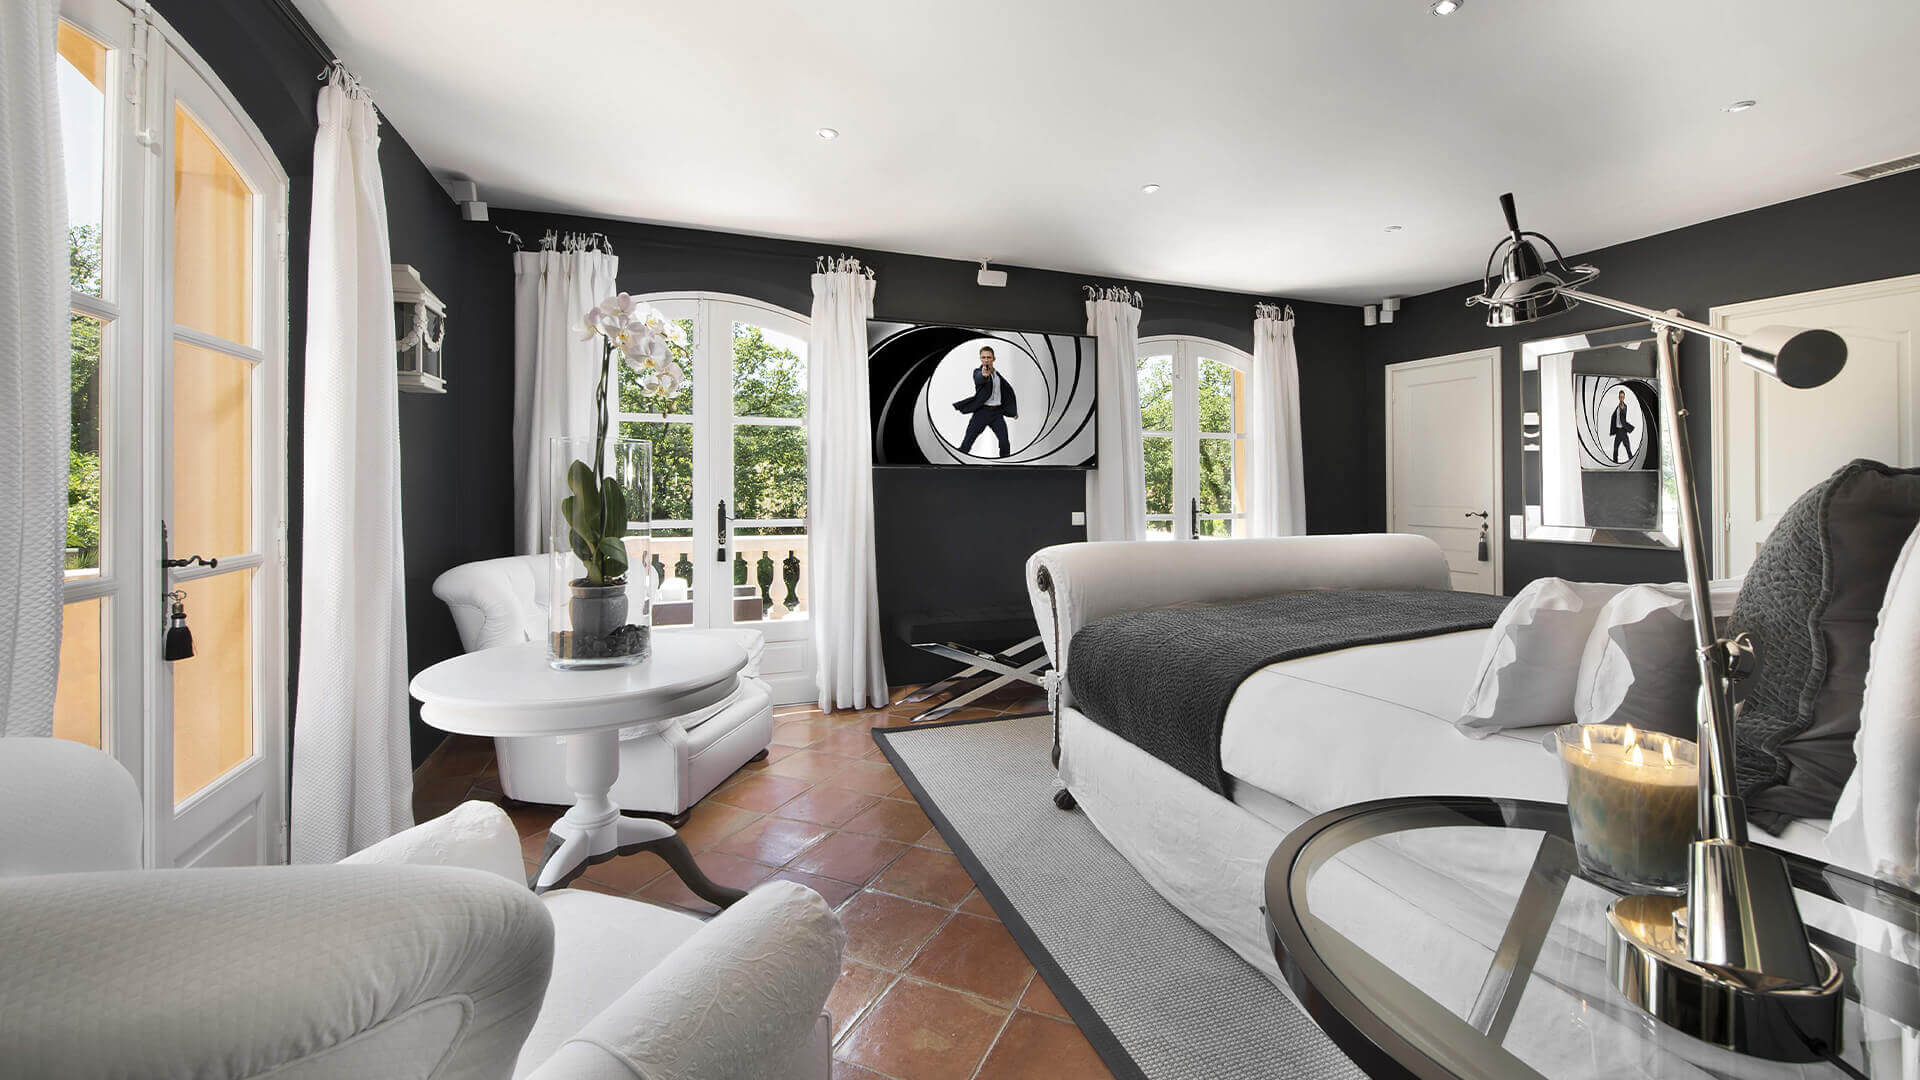 Saint Tropez Villa dark bedroom with james bond movie